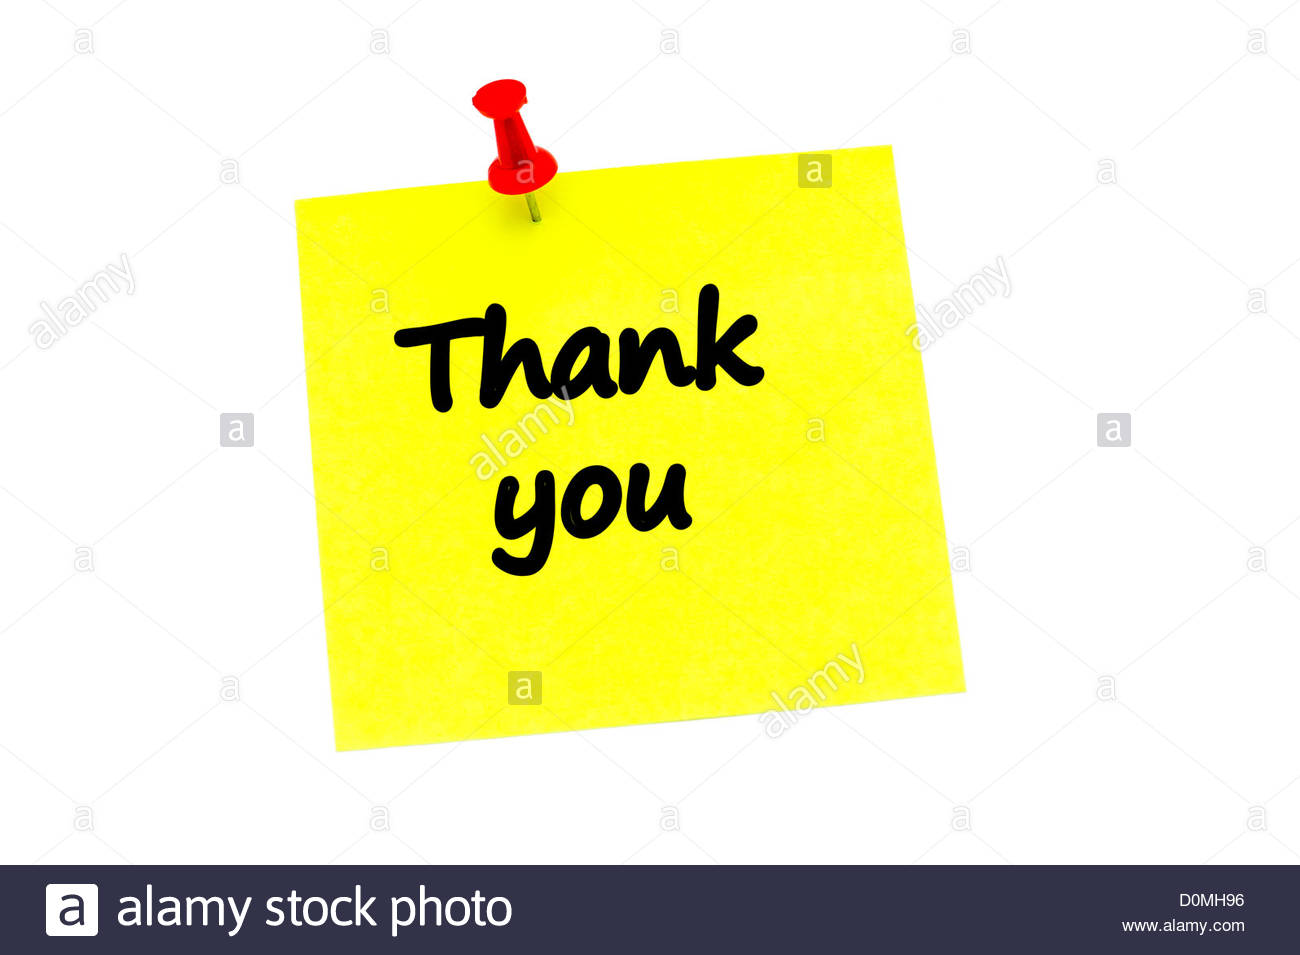 Thank you on a yellow post it note held in place with a red push pin. - Stock Image